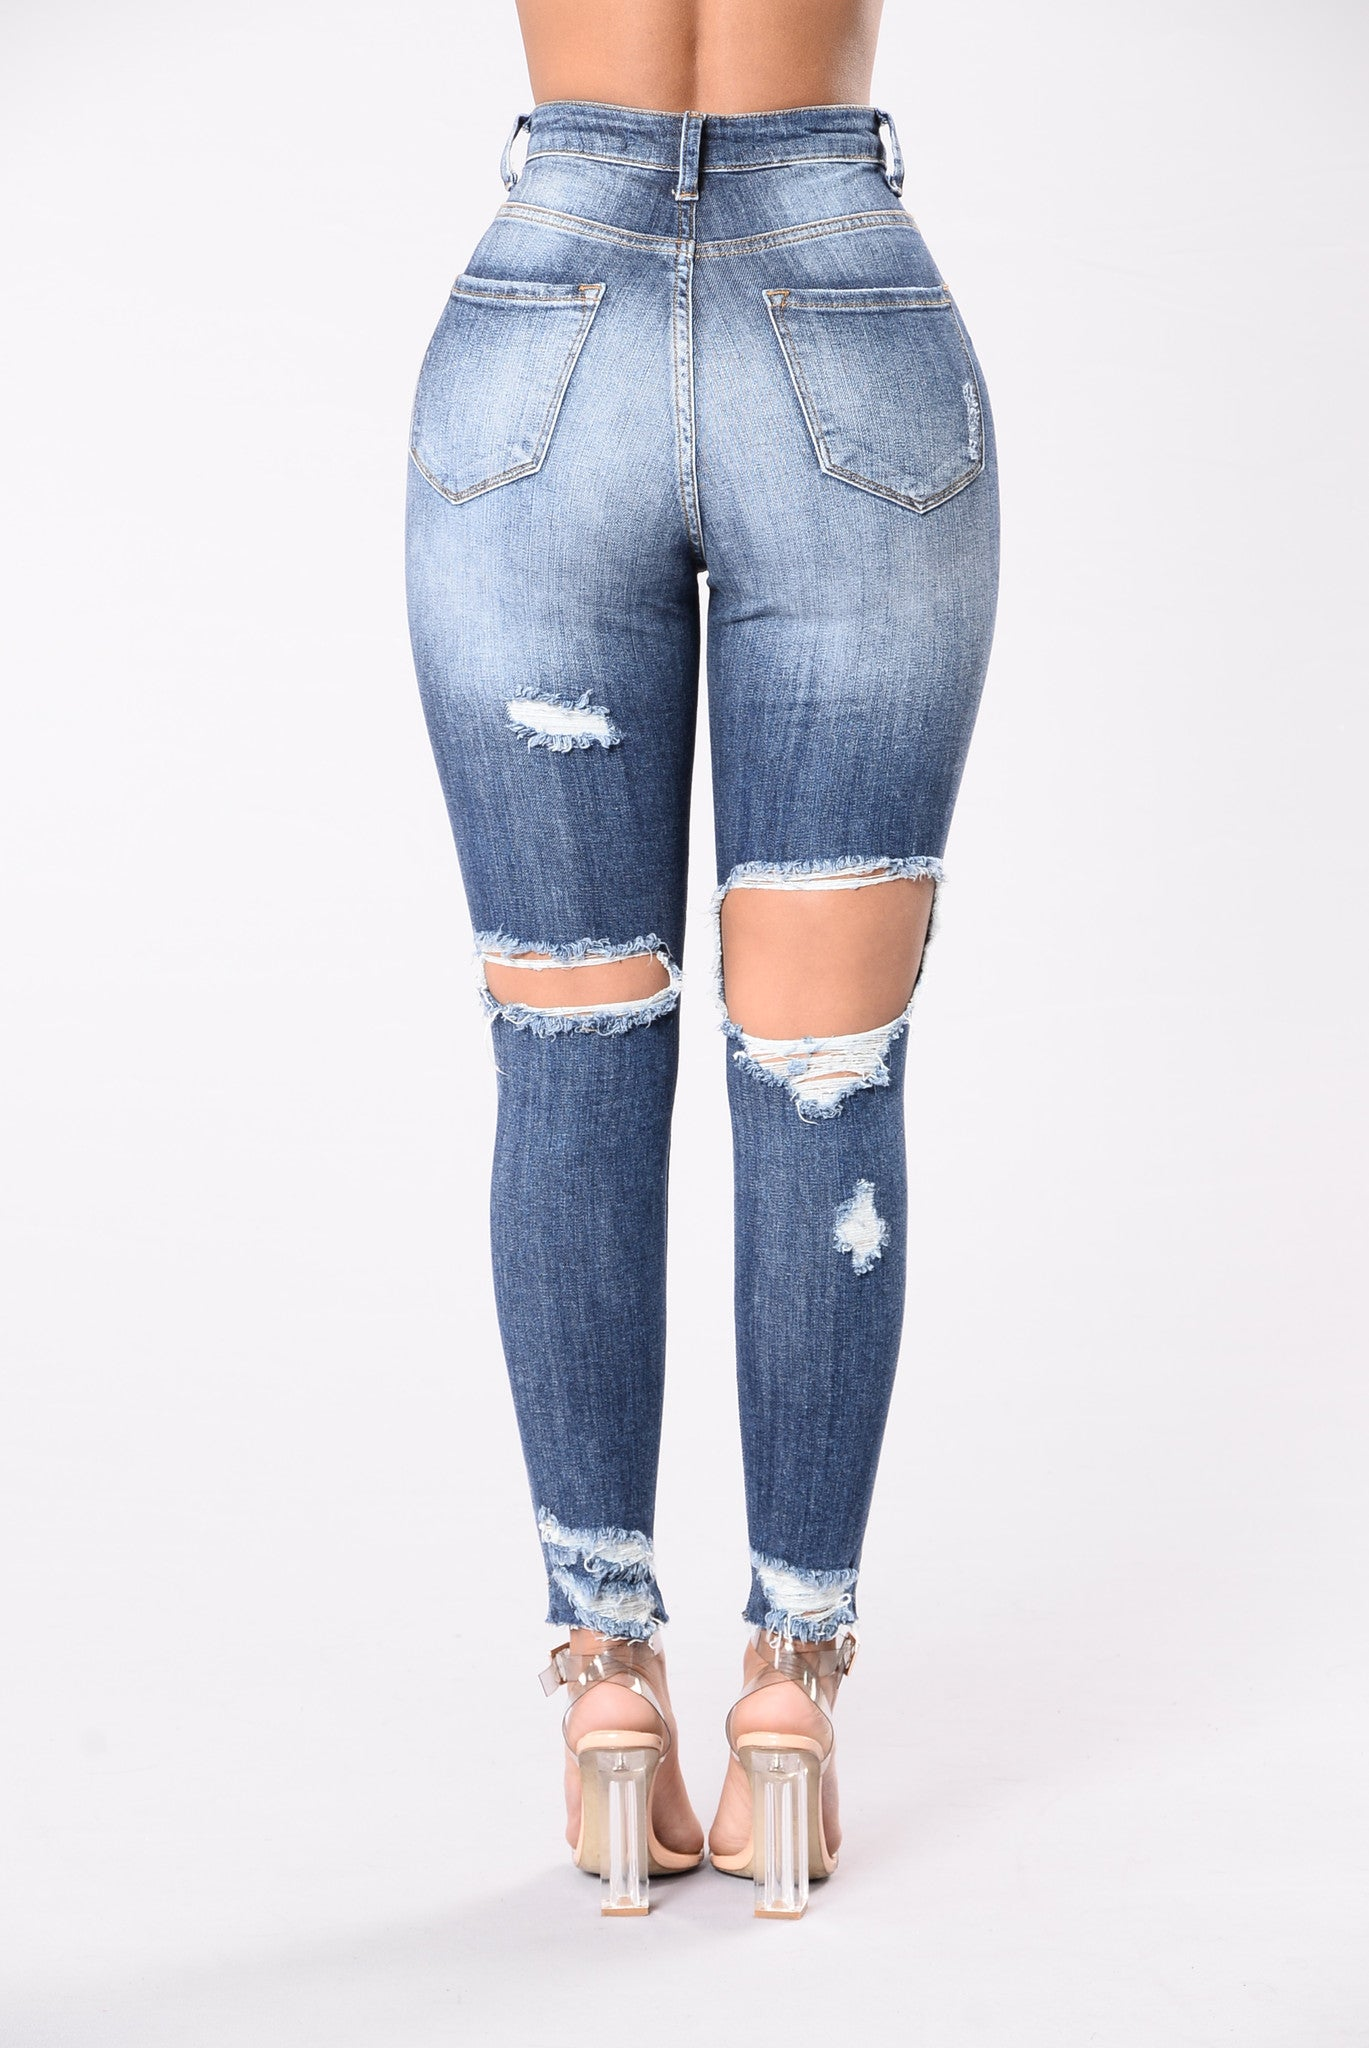 Find great deals on eBay for Miraclebody Jeans in Women's Jeans. Shop with confidence.